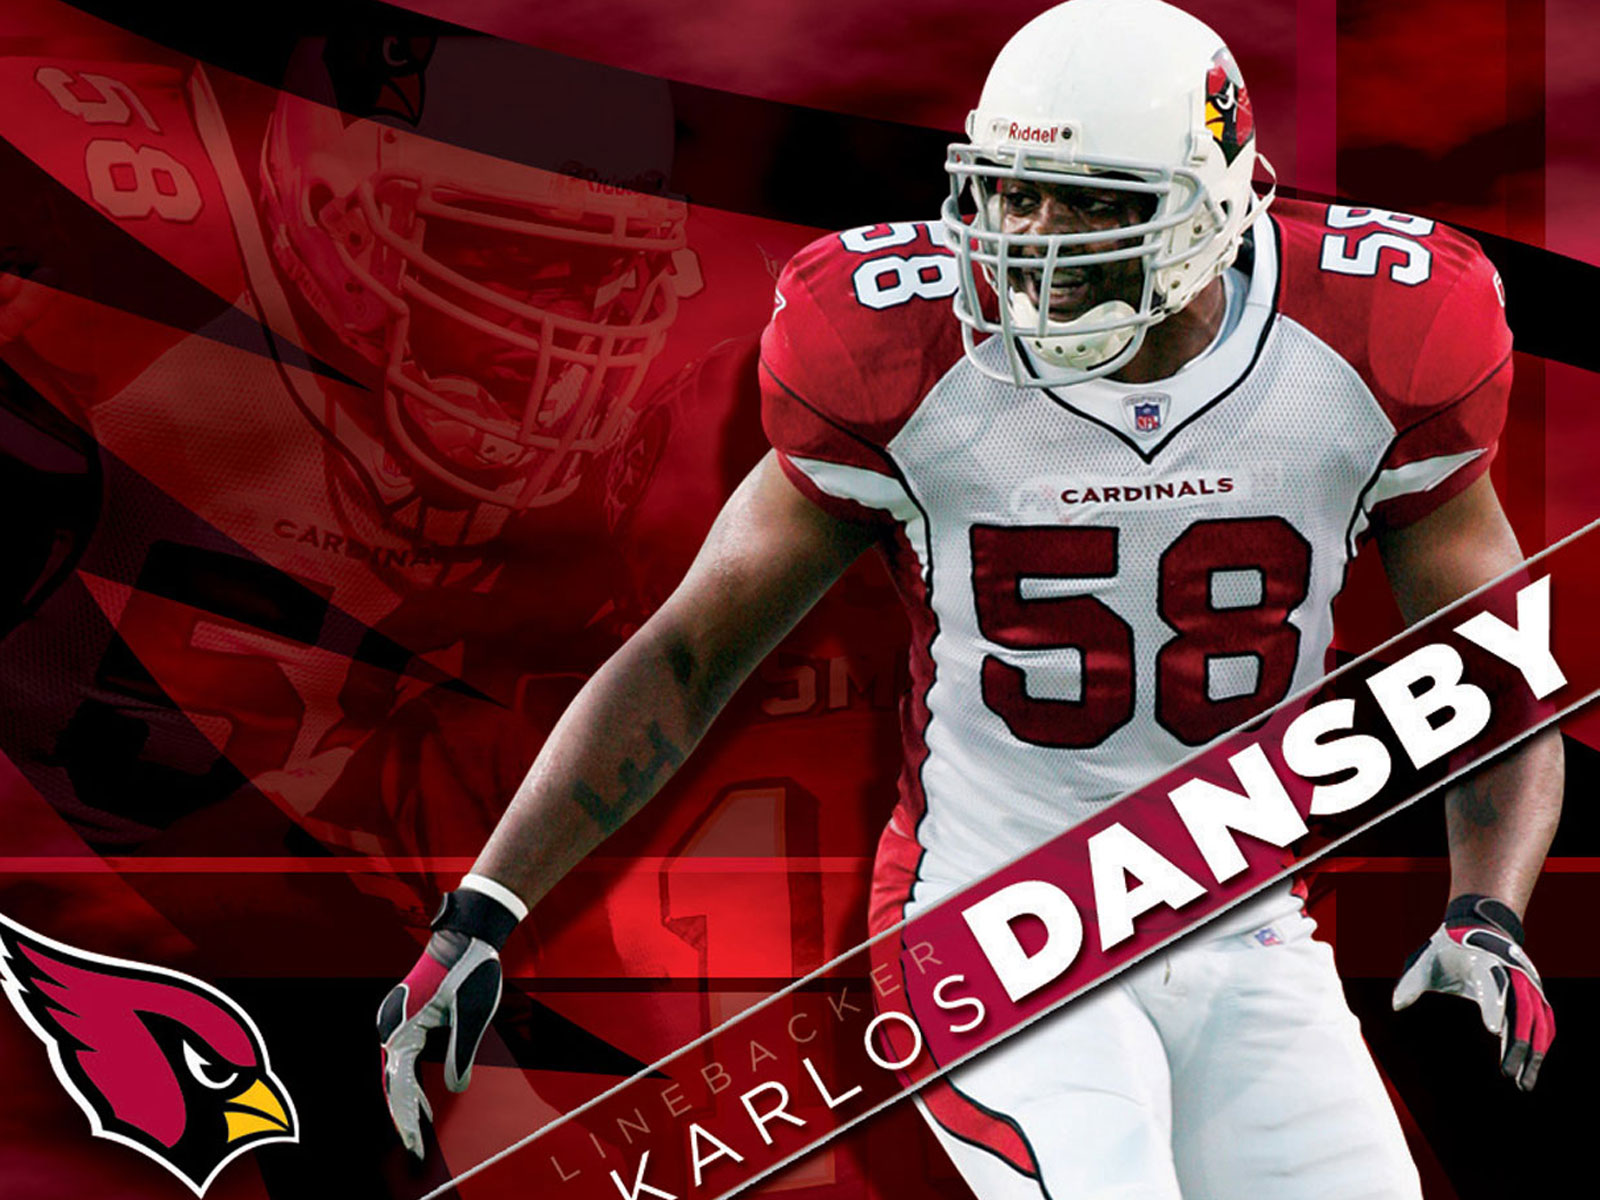 Arizona Cardinals Backgrounds 1600x1200